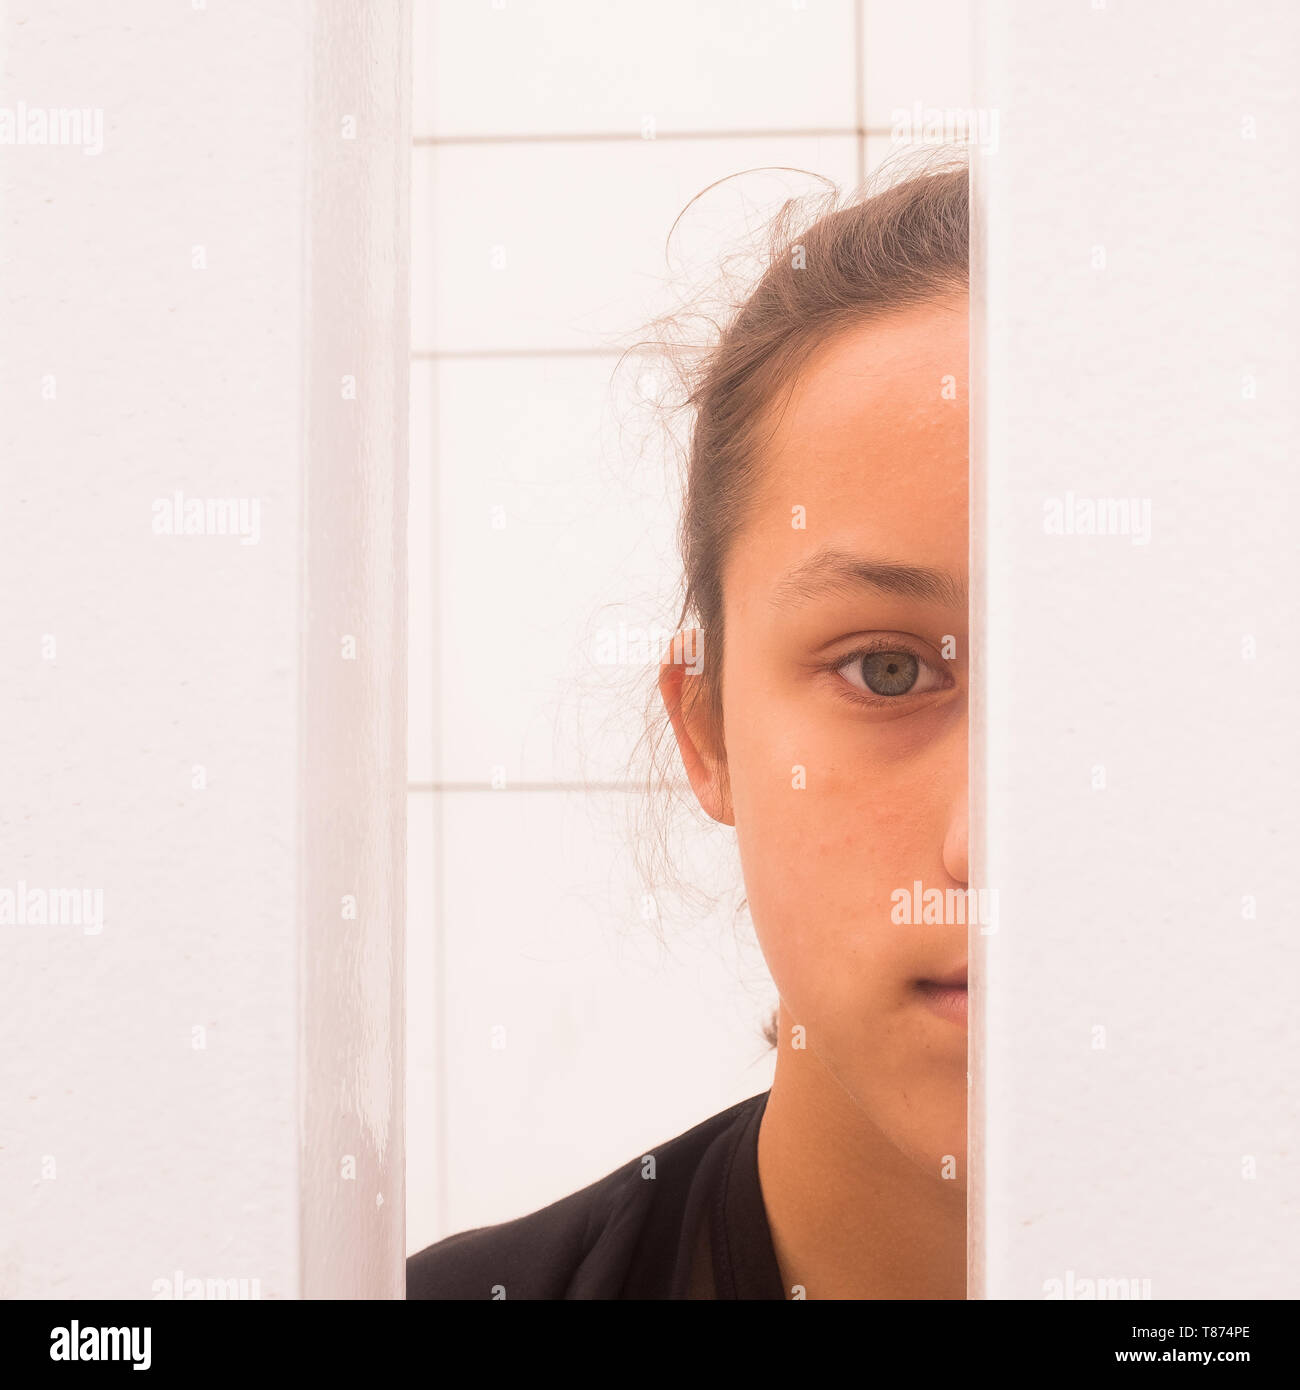 Close up half face portrait teenager girl looking through white metal bars, self-awareness and self worth concept, square image - Stock Image